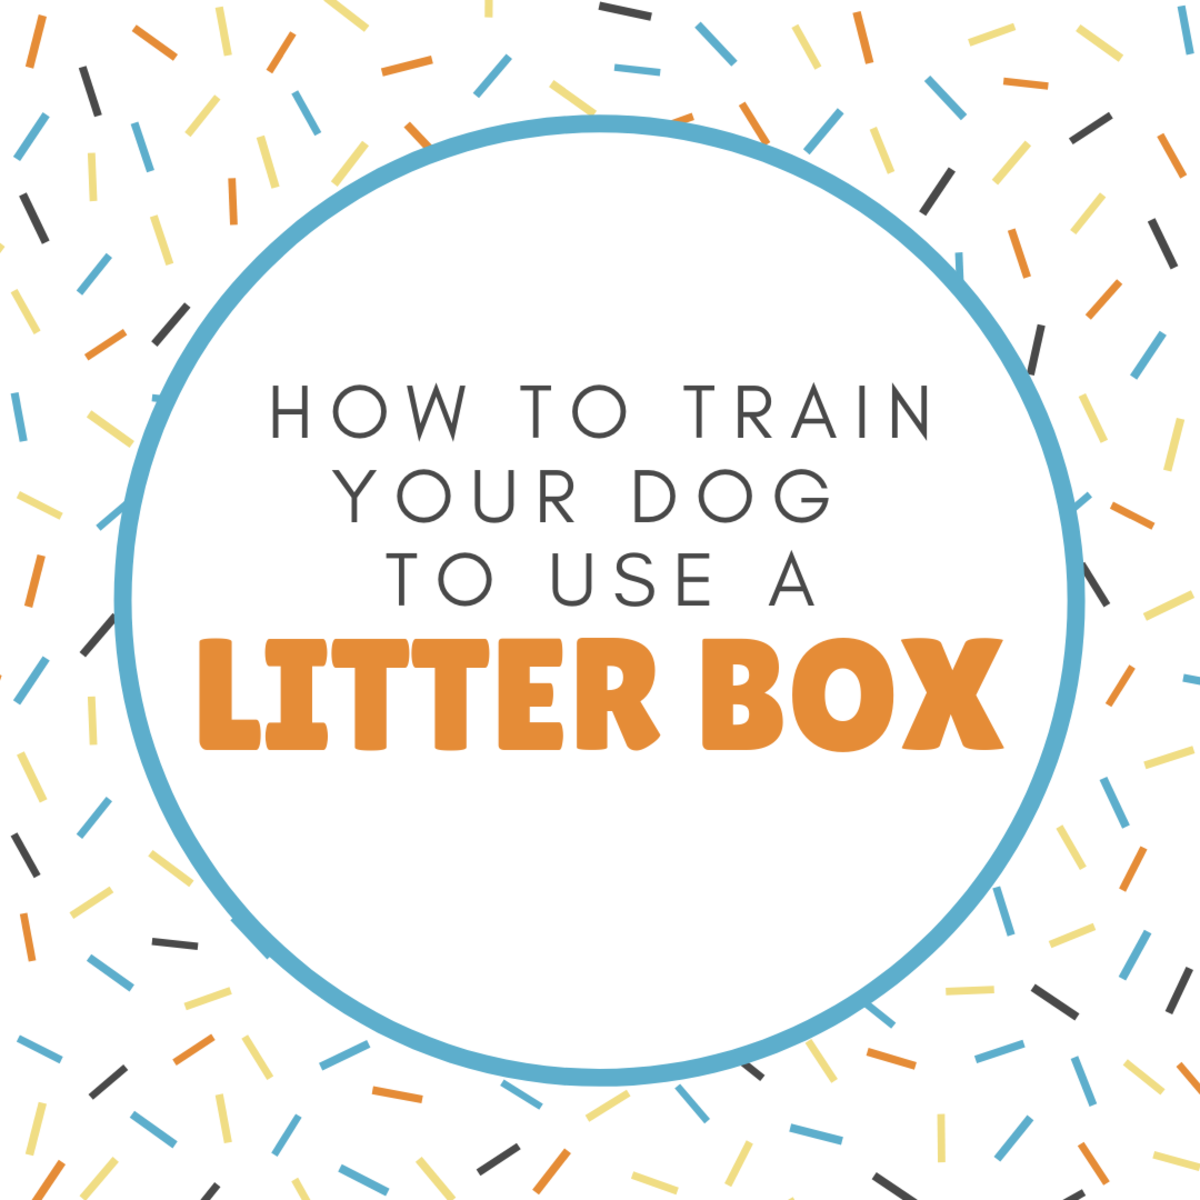 Train Your Dog to Use a Litter Box